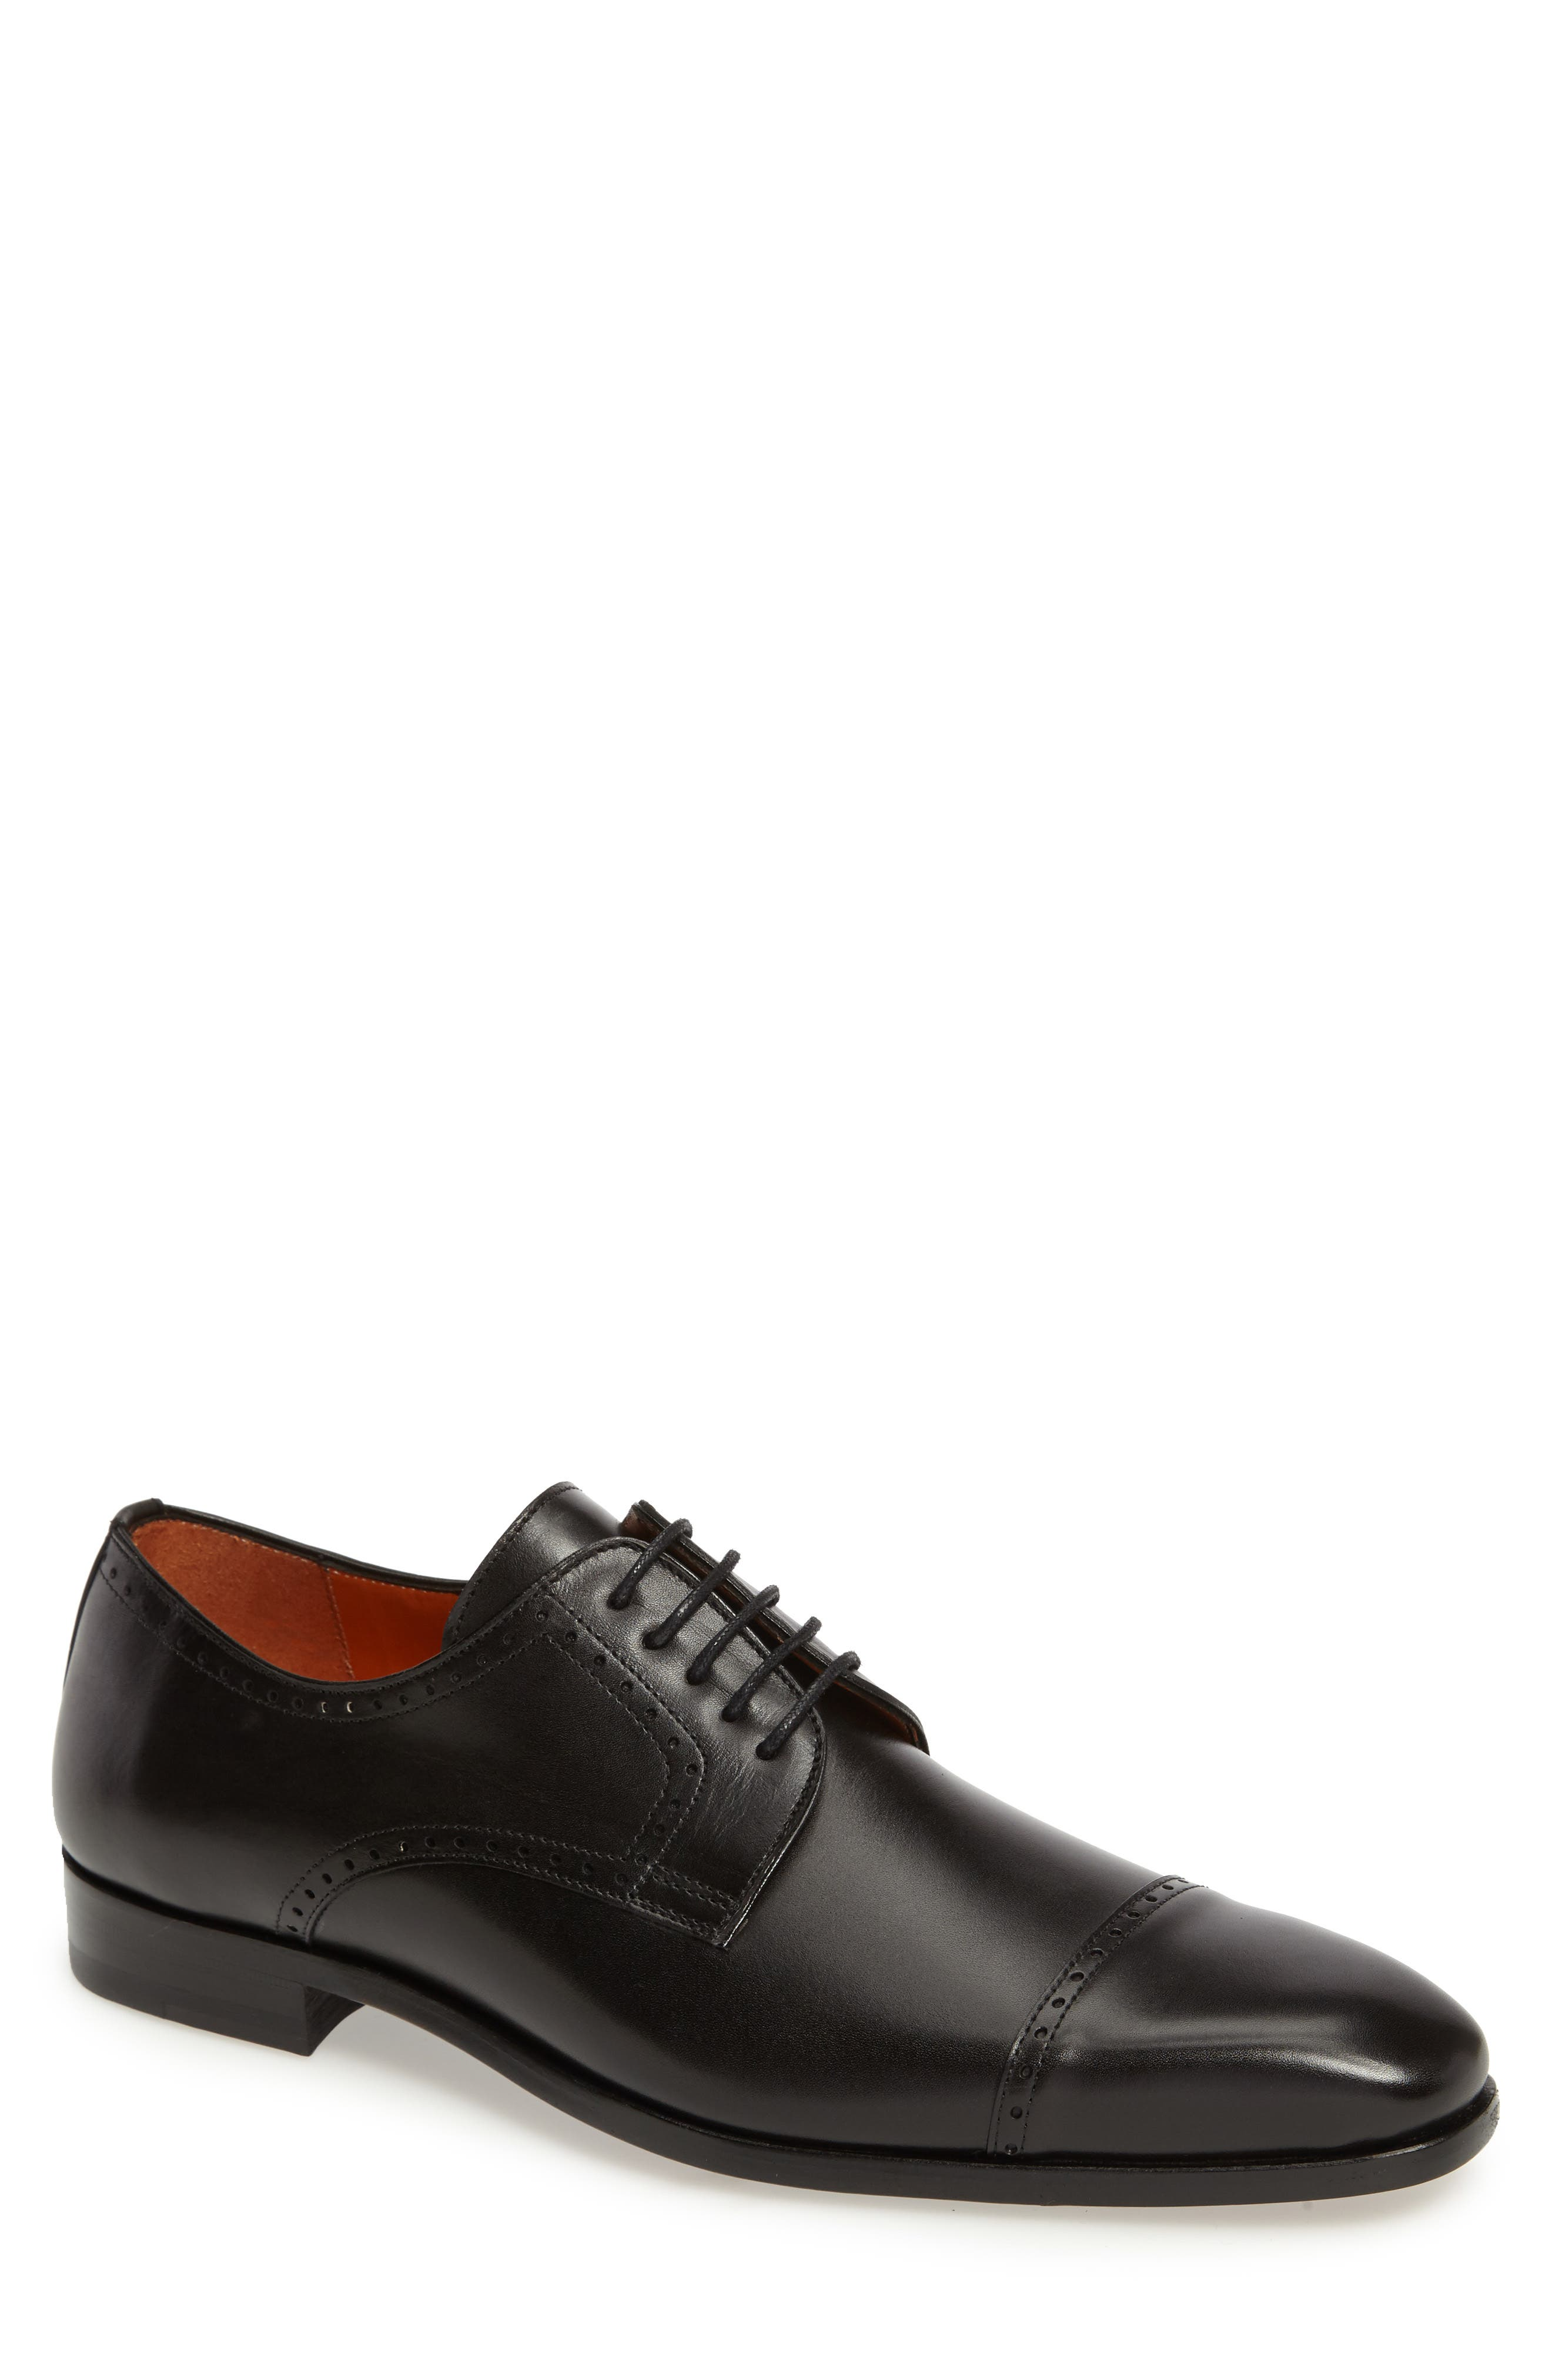 Boas Cap Toe Oxford,                             Main thumbnail 1, color,                             BLACK LEATHER